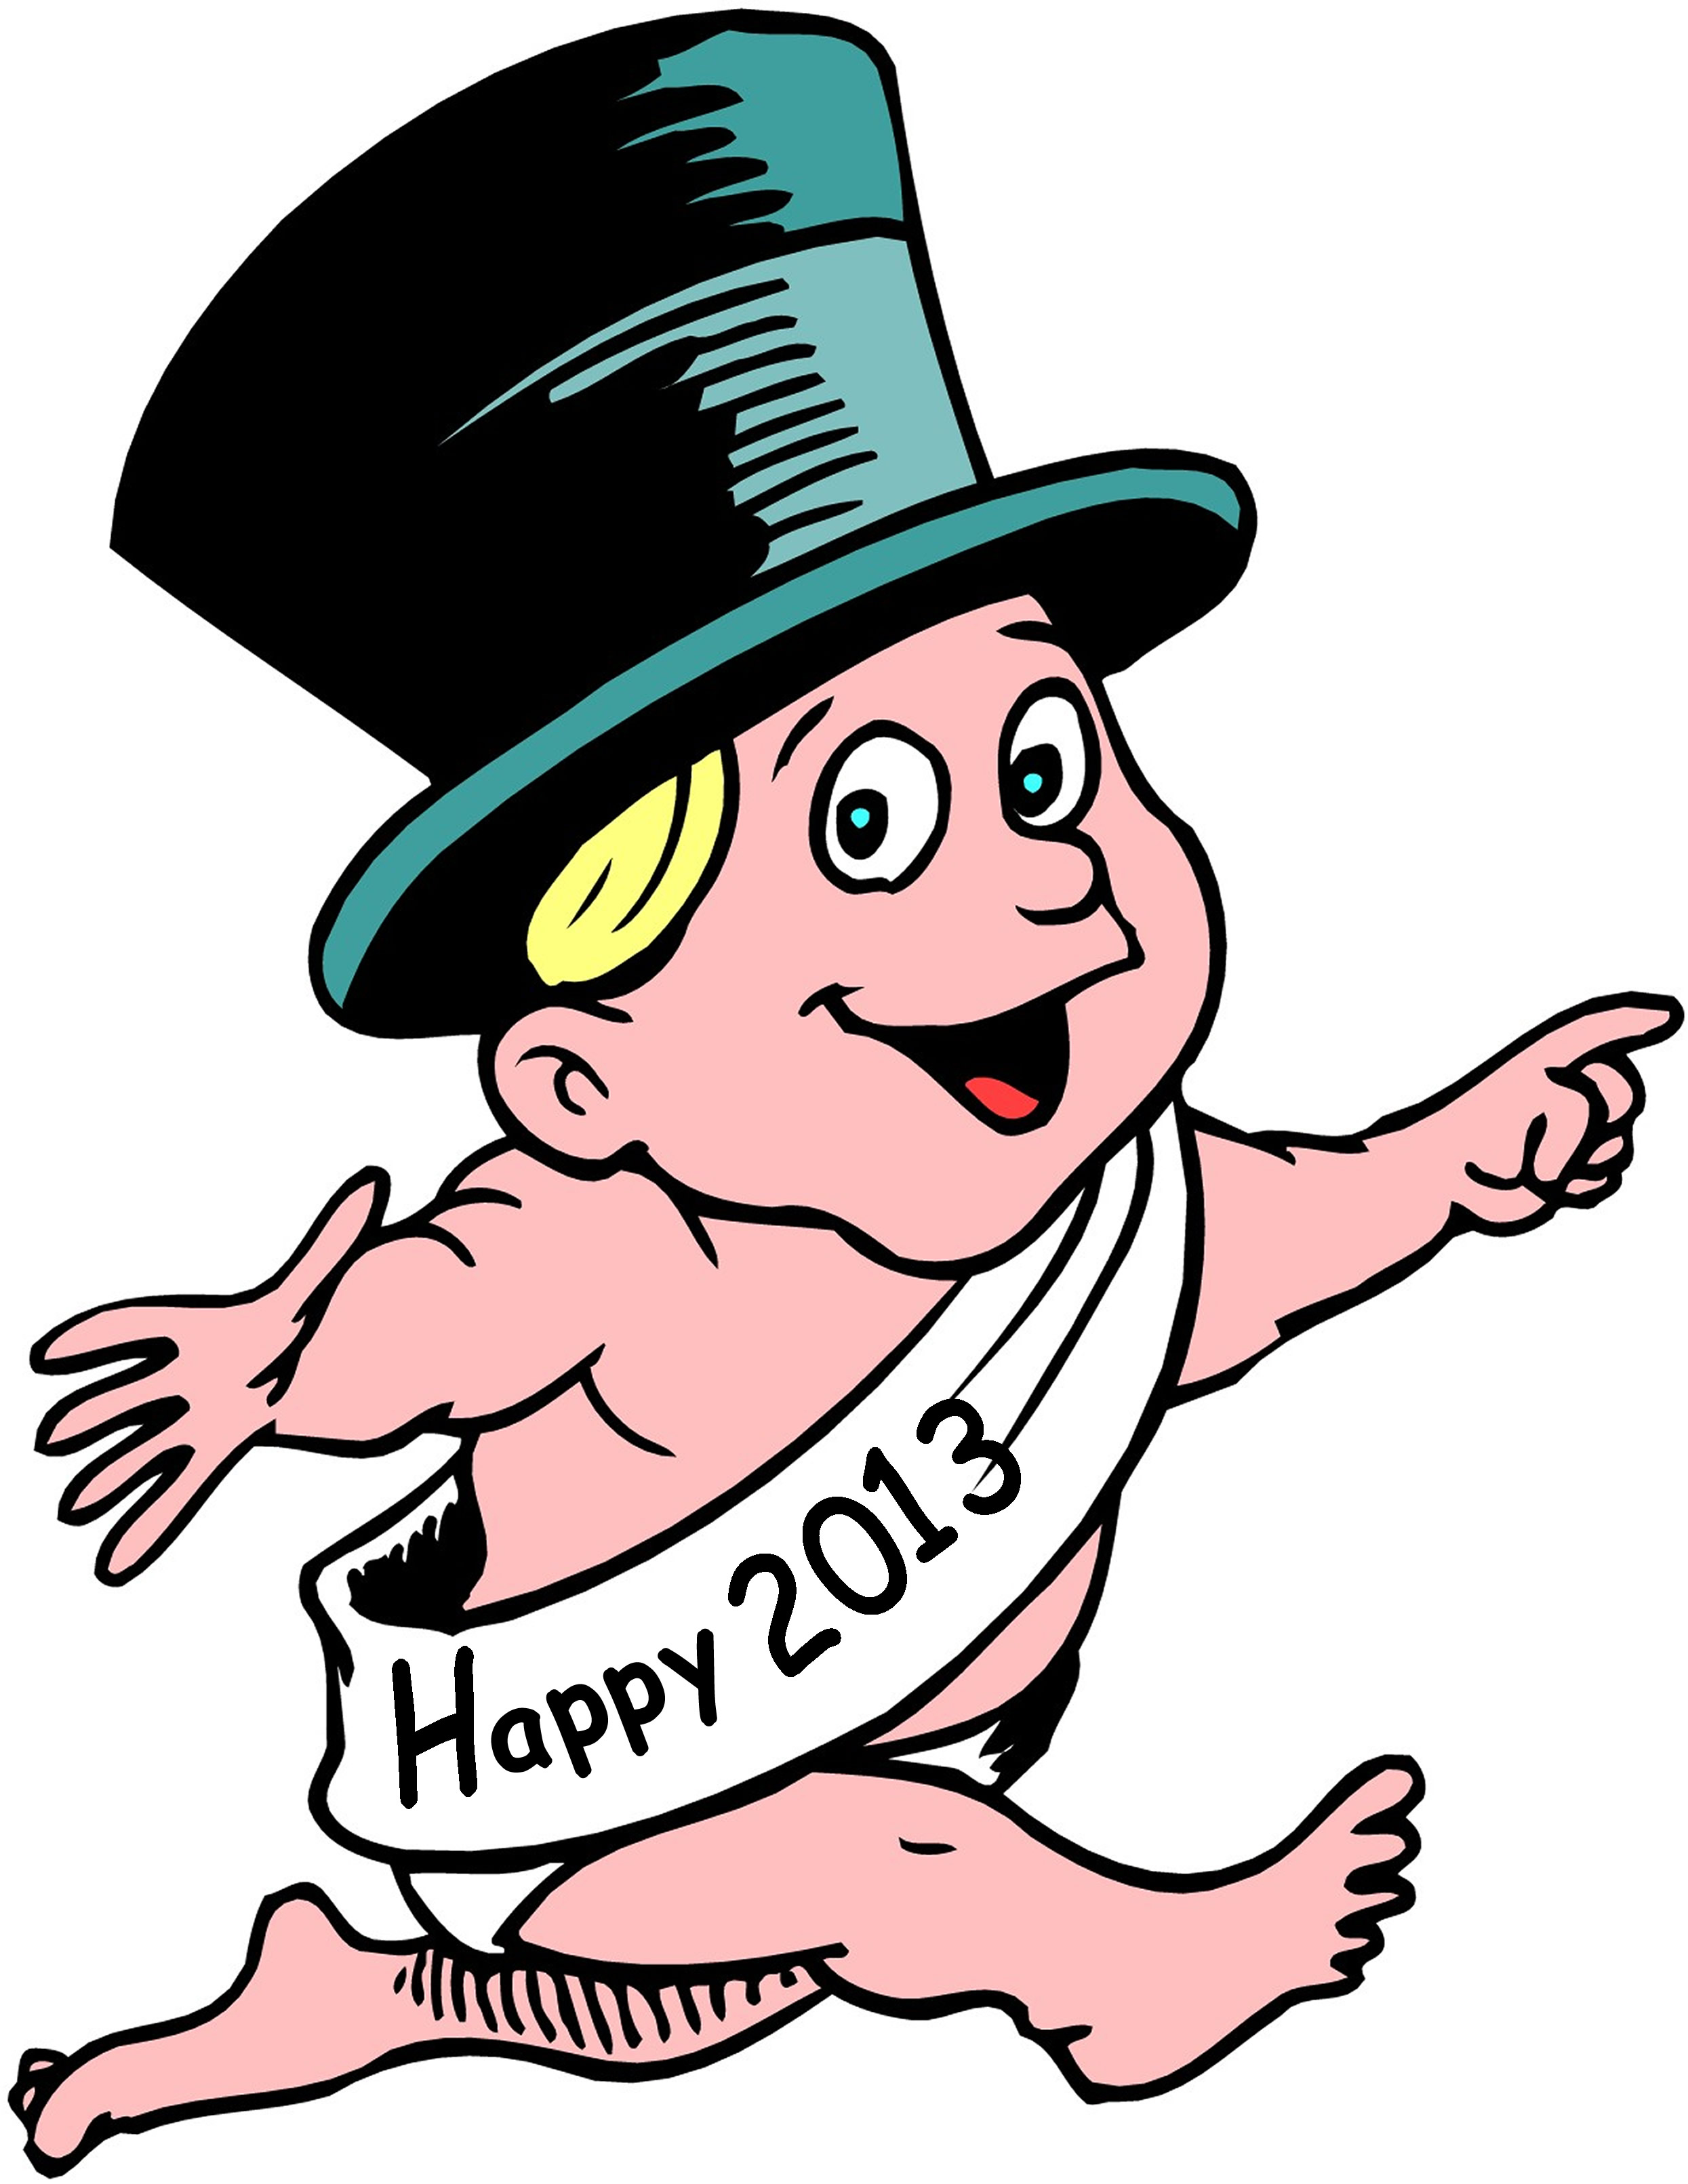 New Years Day Clip Art - Cliparts.co